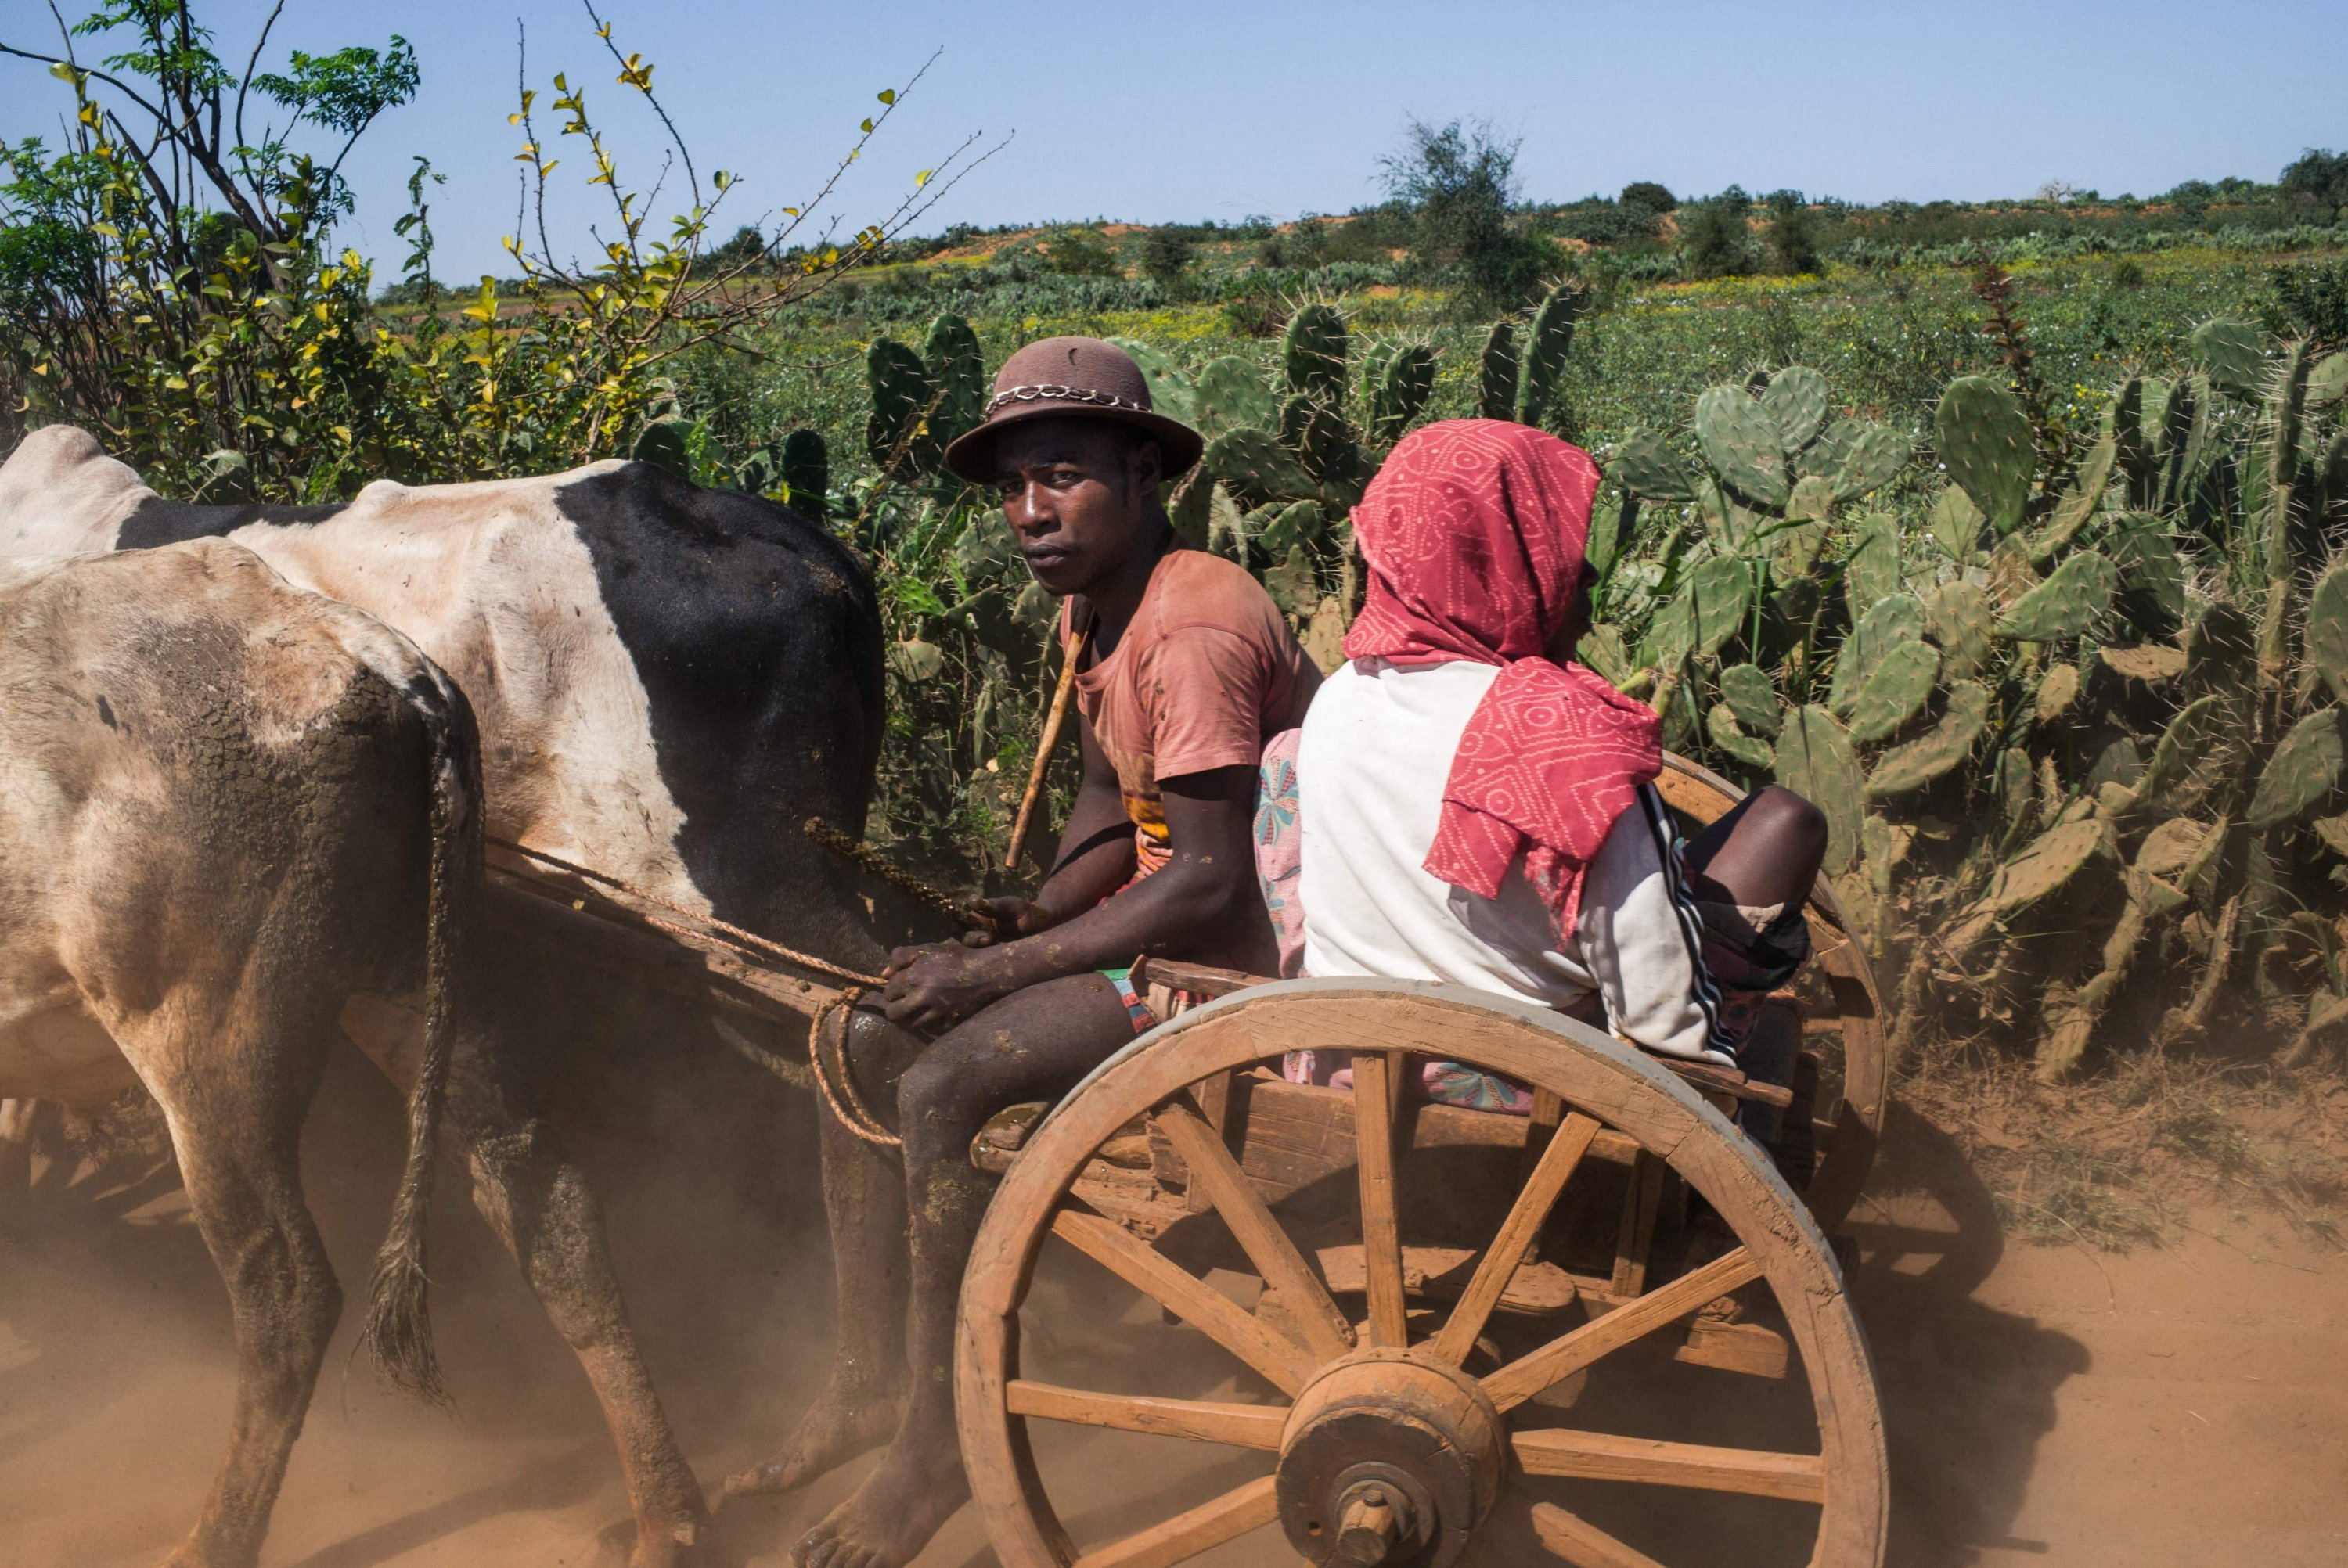 People sit on a cart pulled by zebus on the National Road 13 (RN13) between Ambovombe and Amboasary Atsimo, Madagascar, Sept. 3, 2021. (AFP Photo)